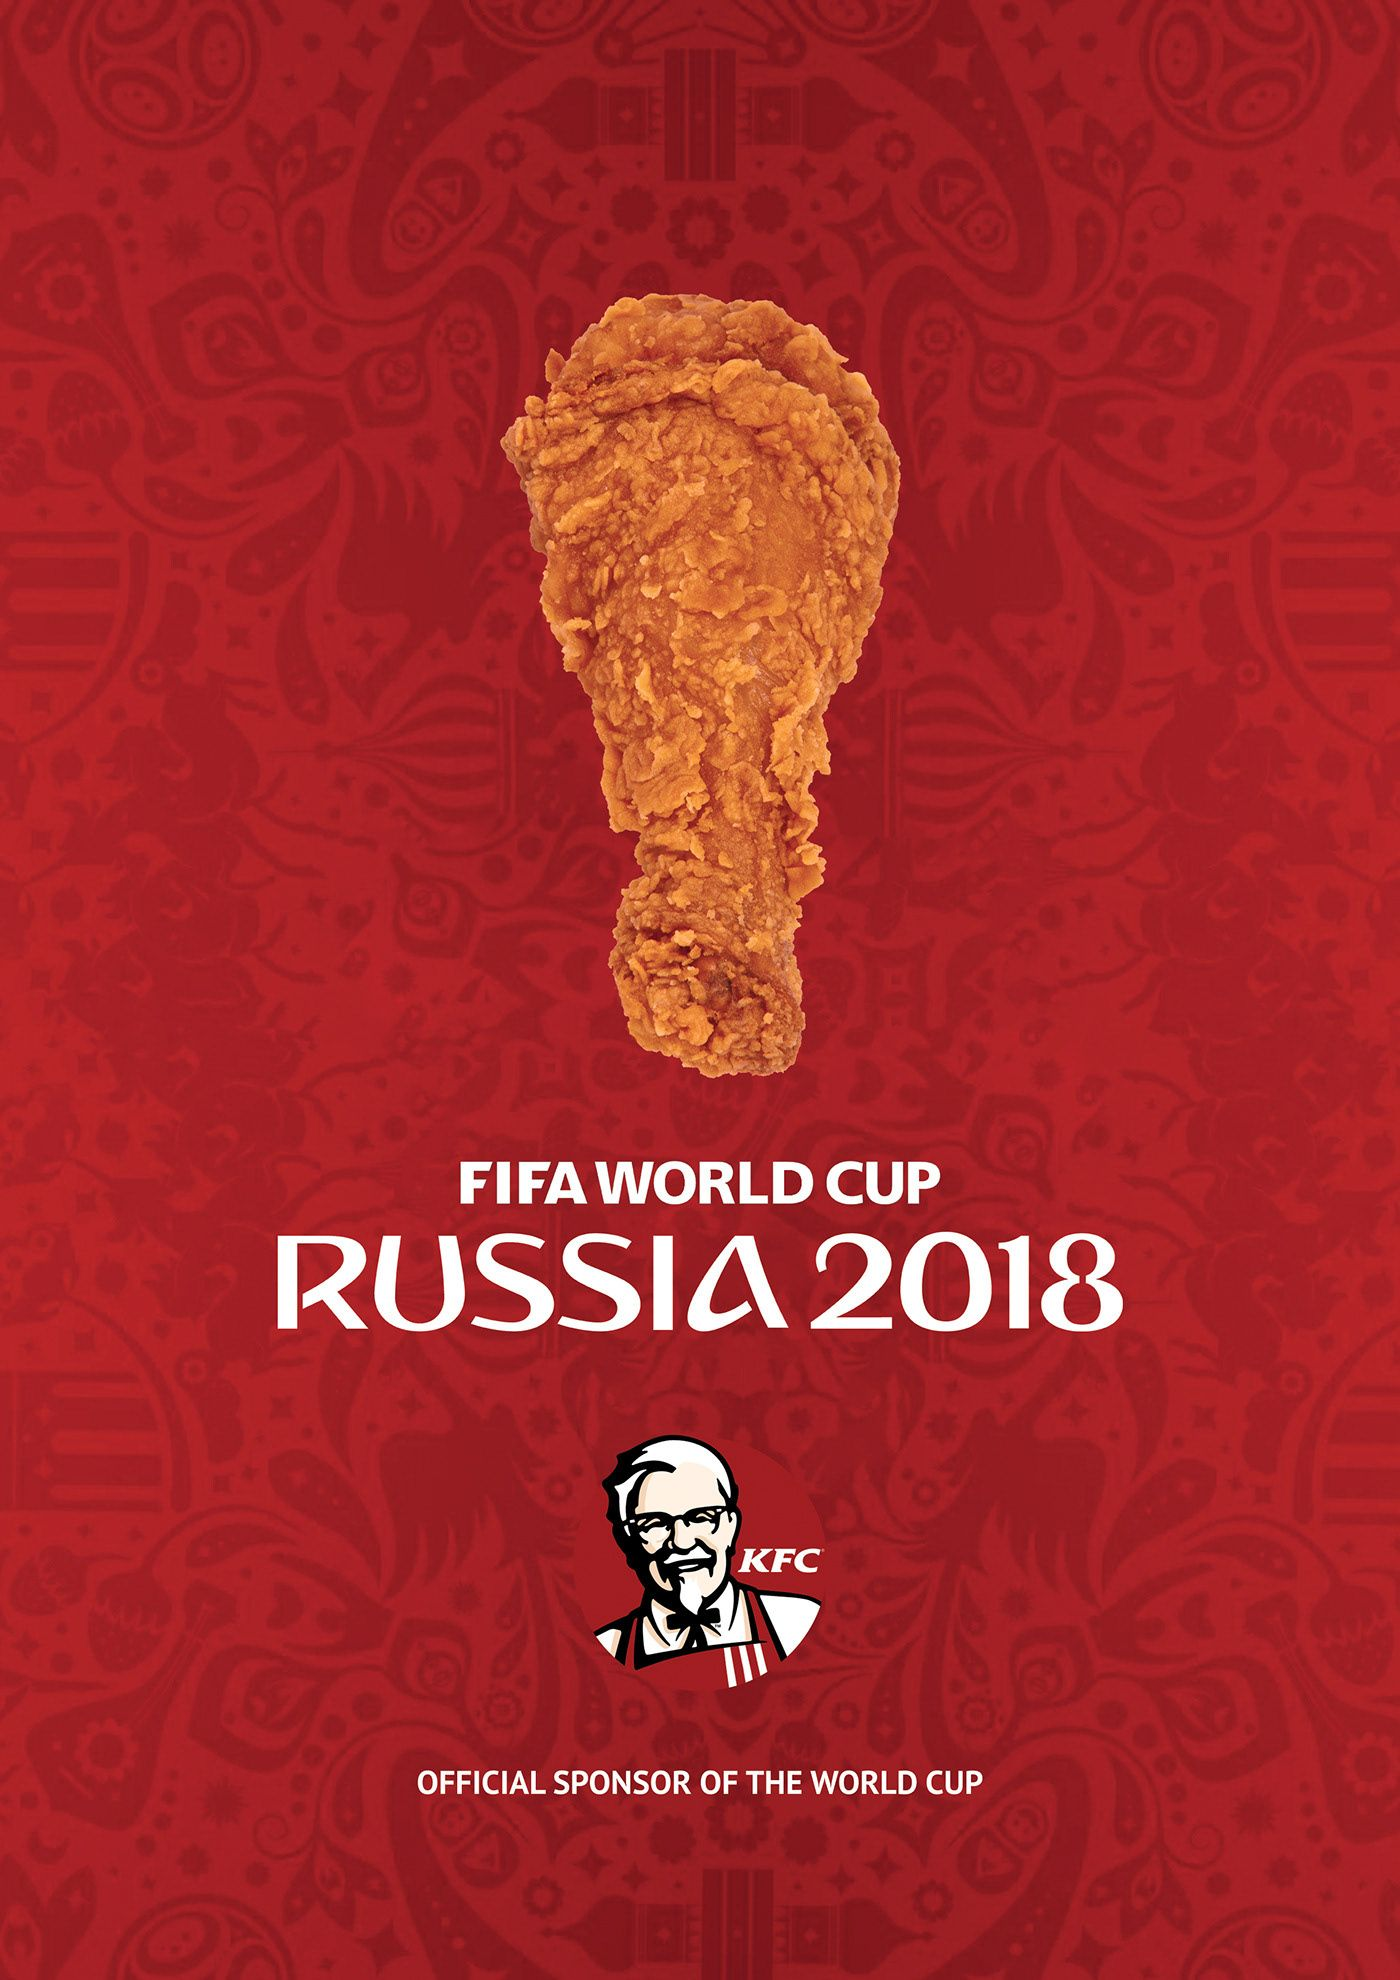 Check Out My Behance Project Fifa World Cup Russia 2018 Kfc Https Www Behance Net Gallery 65313793 Fifa Wo World Cup World Cup Russia 2018 World Cup Logo